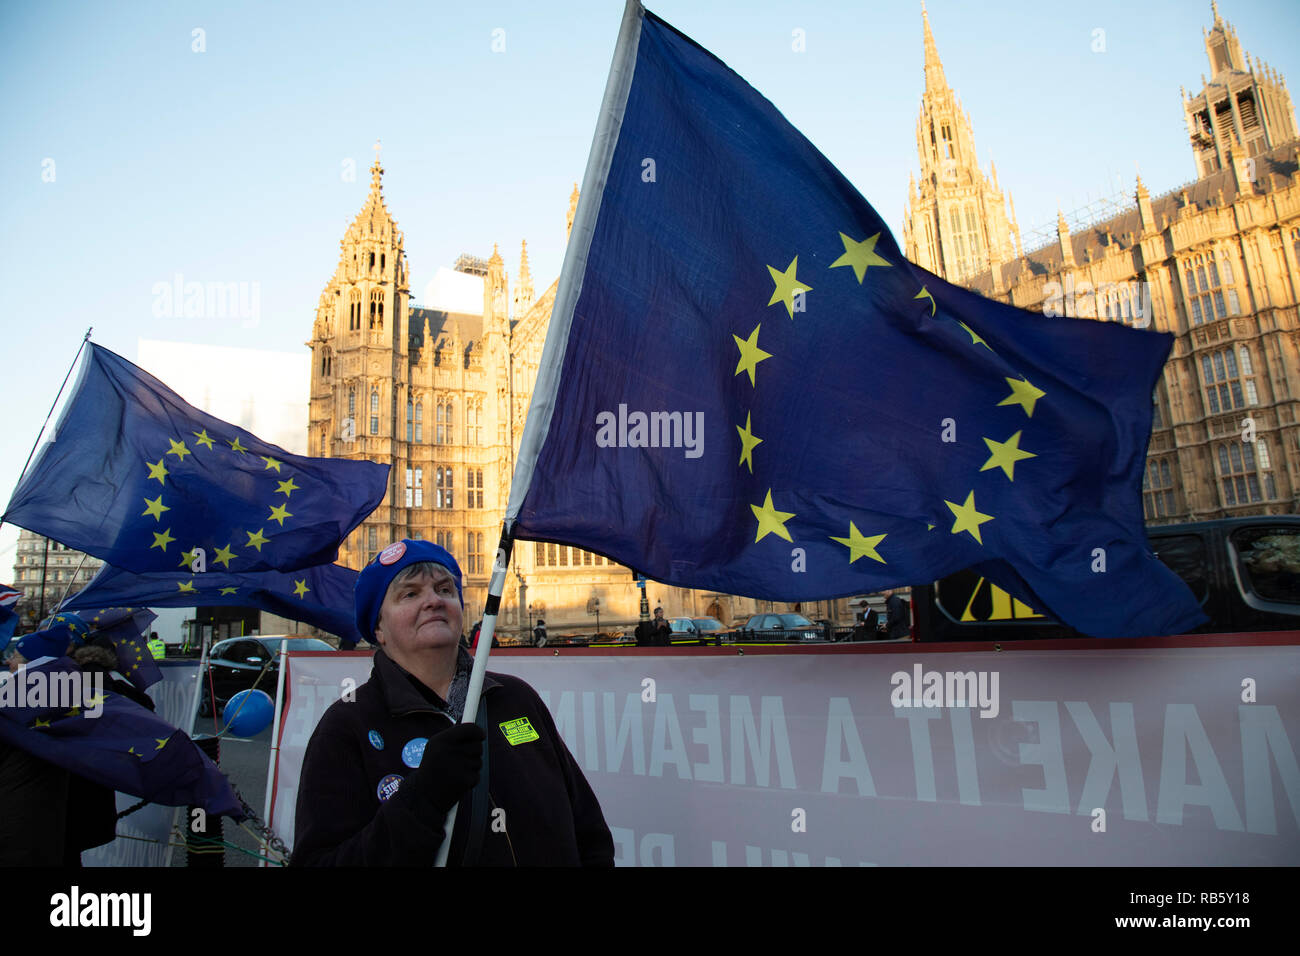 Anti Brexit pro remain demonstrators protest waving European Union flags in Westminster opposite Parliament on the day that Conservative Party MPs triggered a vote of no confidence in the Prime Minister on 12th December 2018 in London, England, United Kingdom. - Stock Image